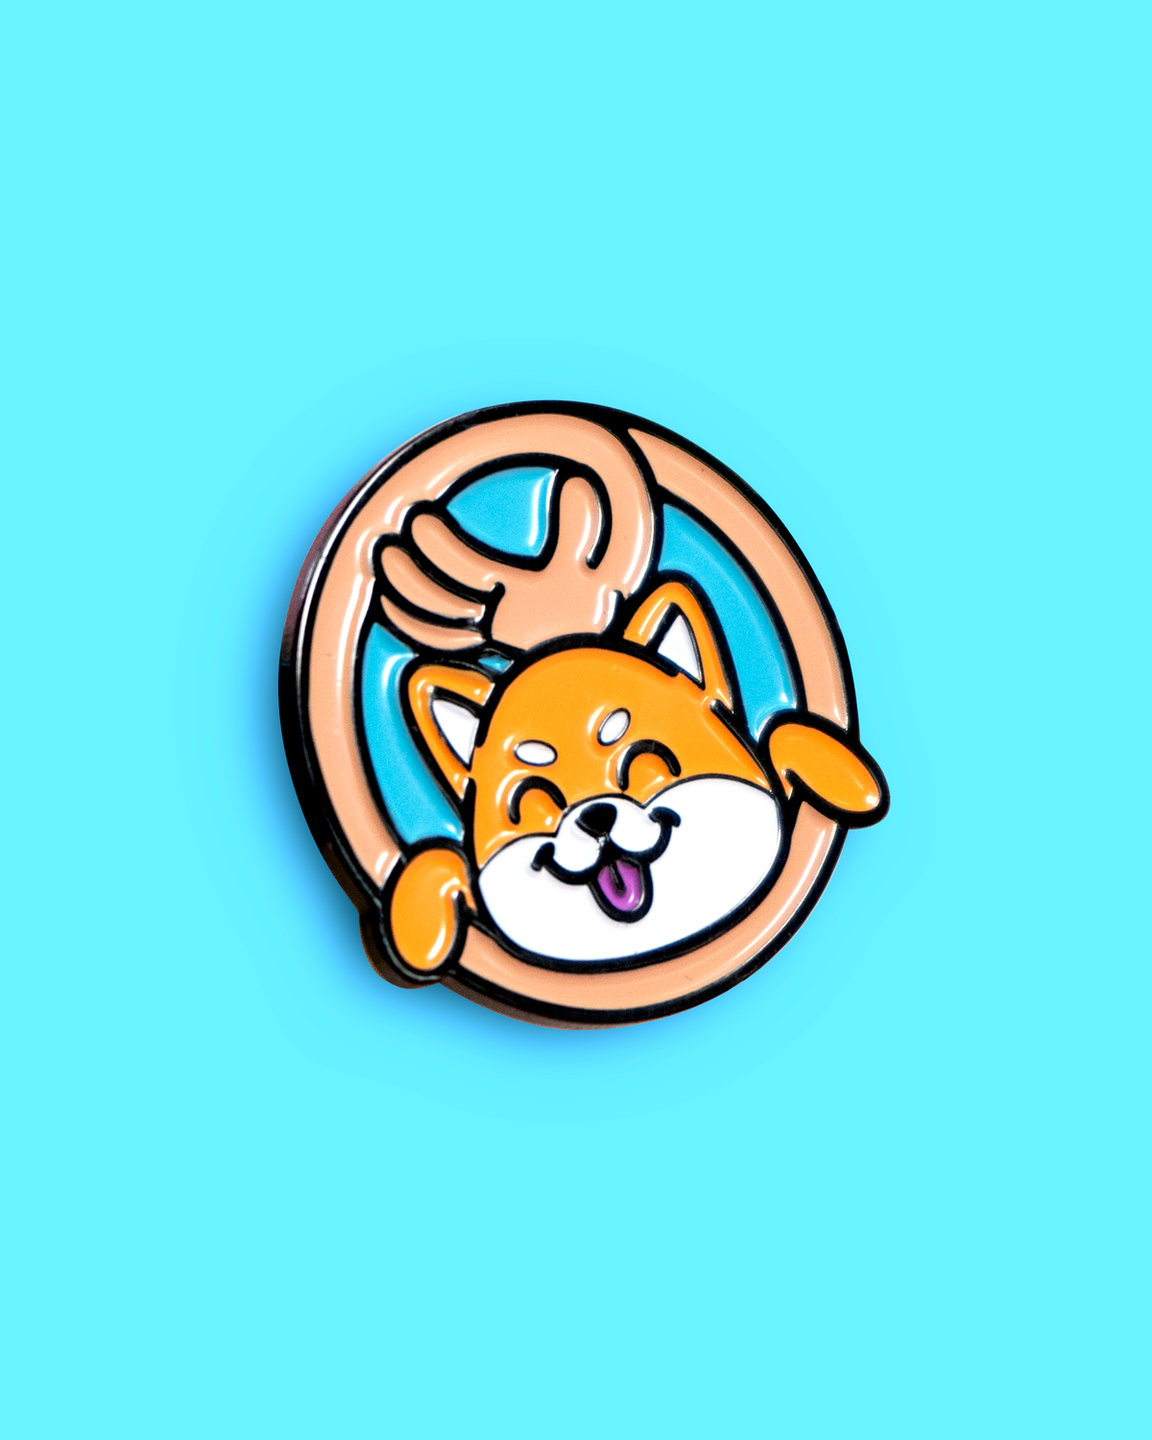 The Puppy Pat Pin